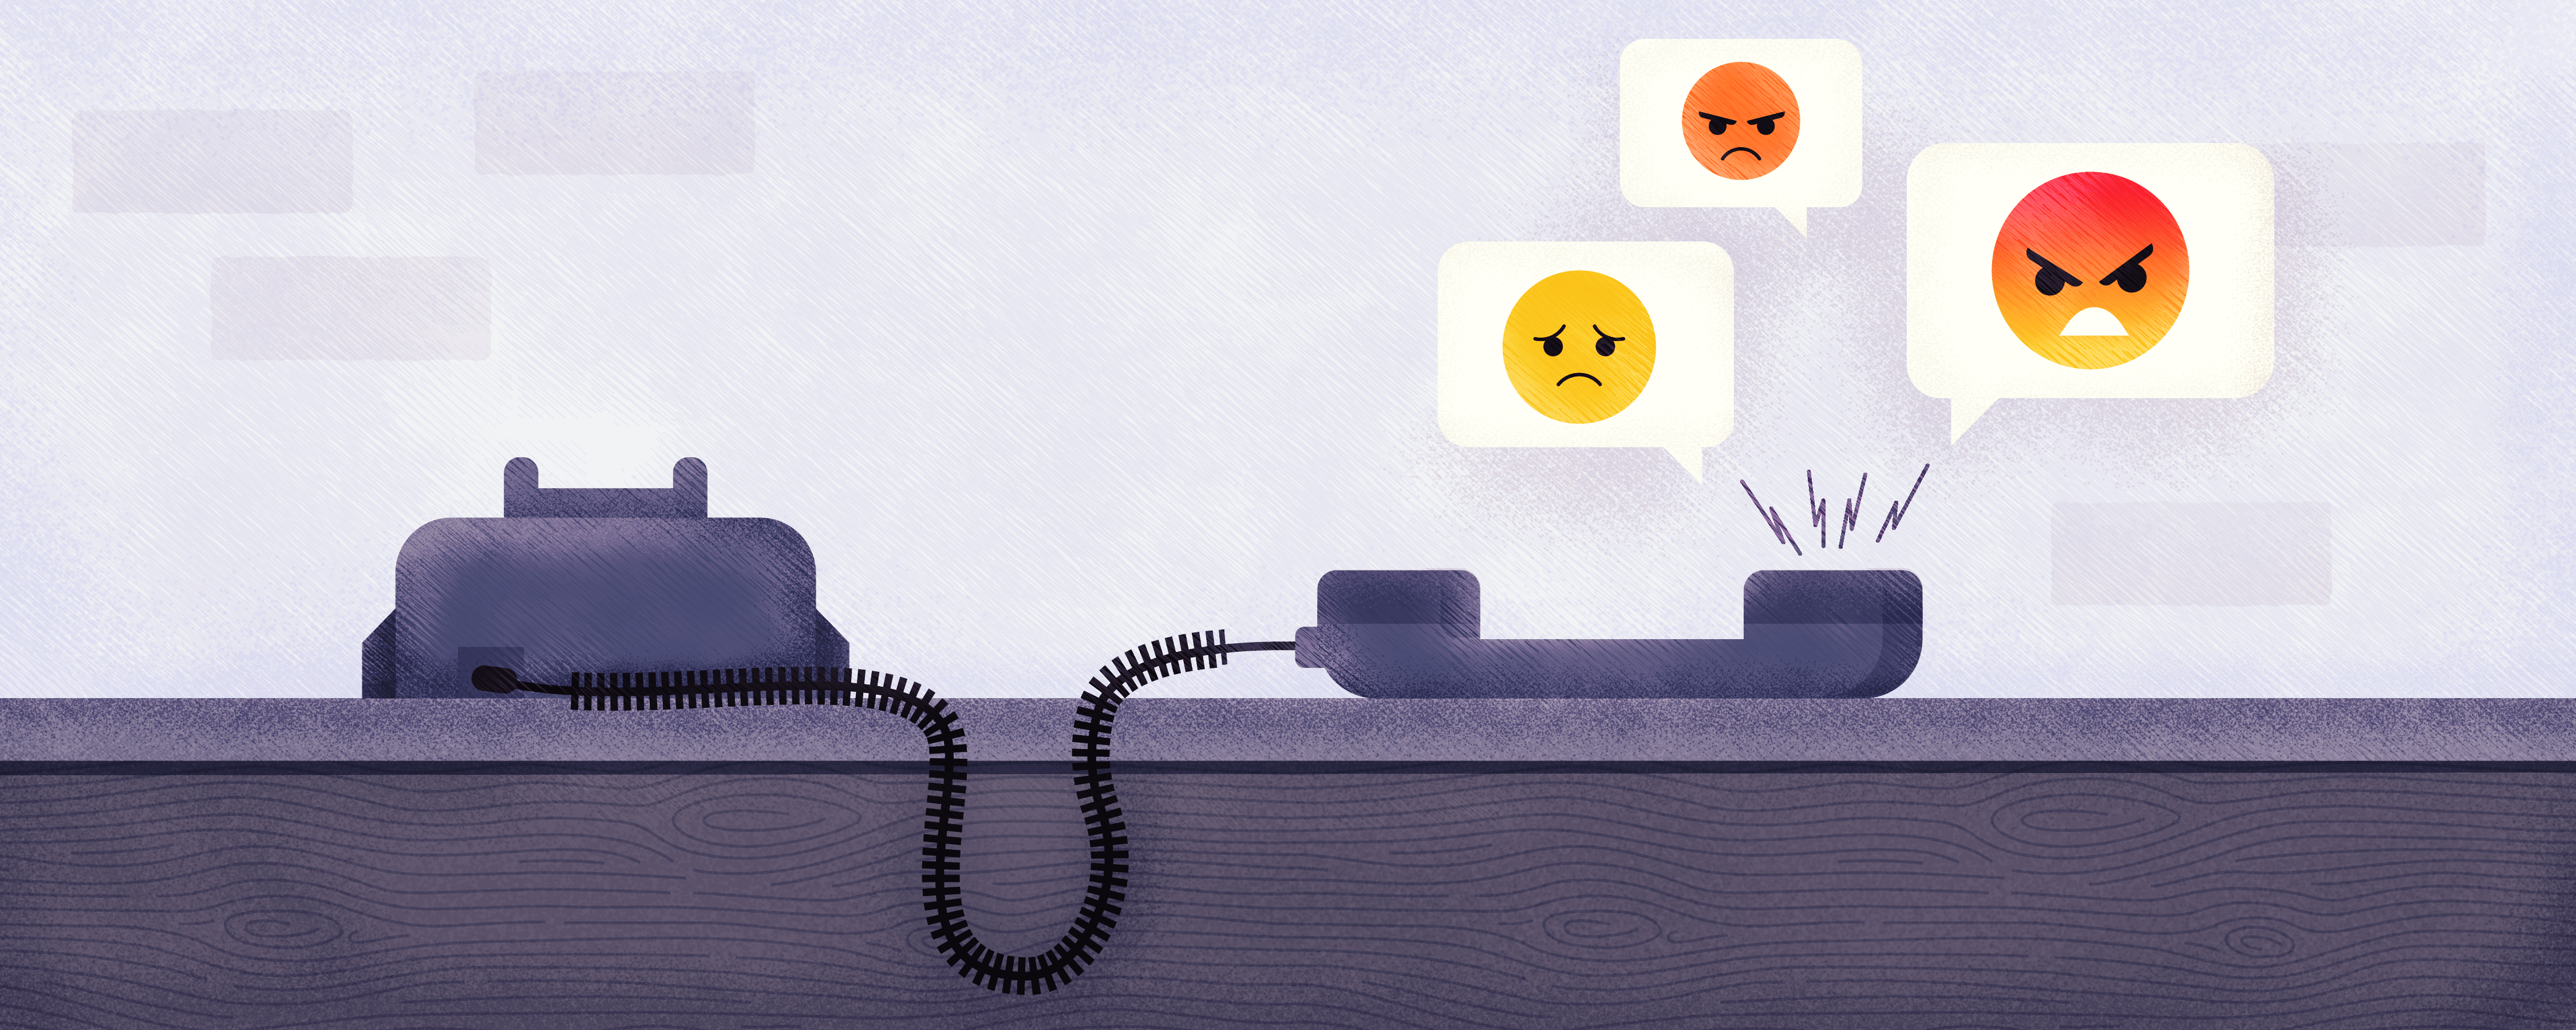 The WORST phone support experiences